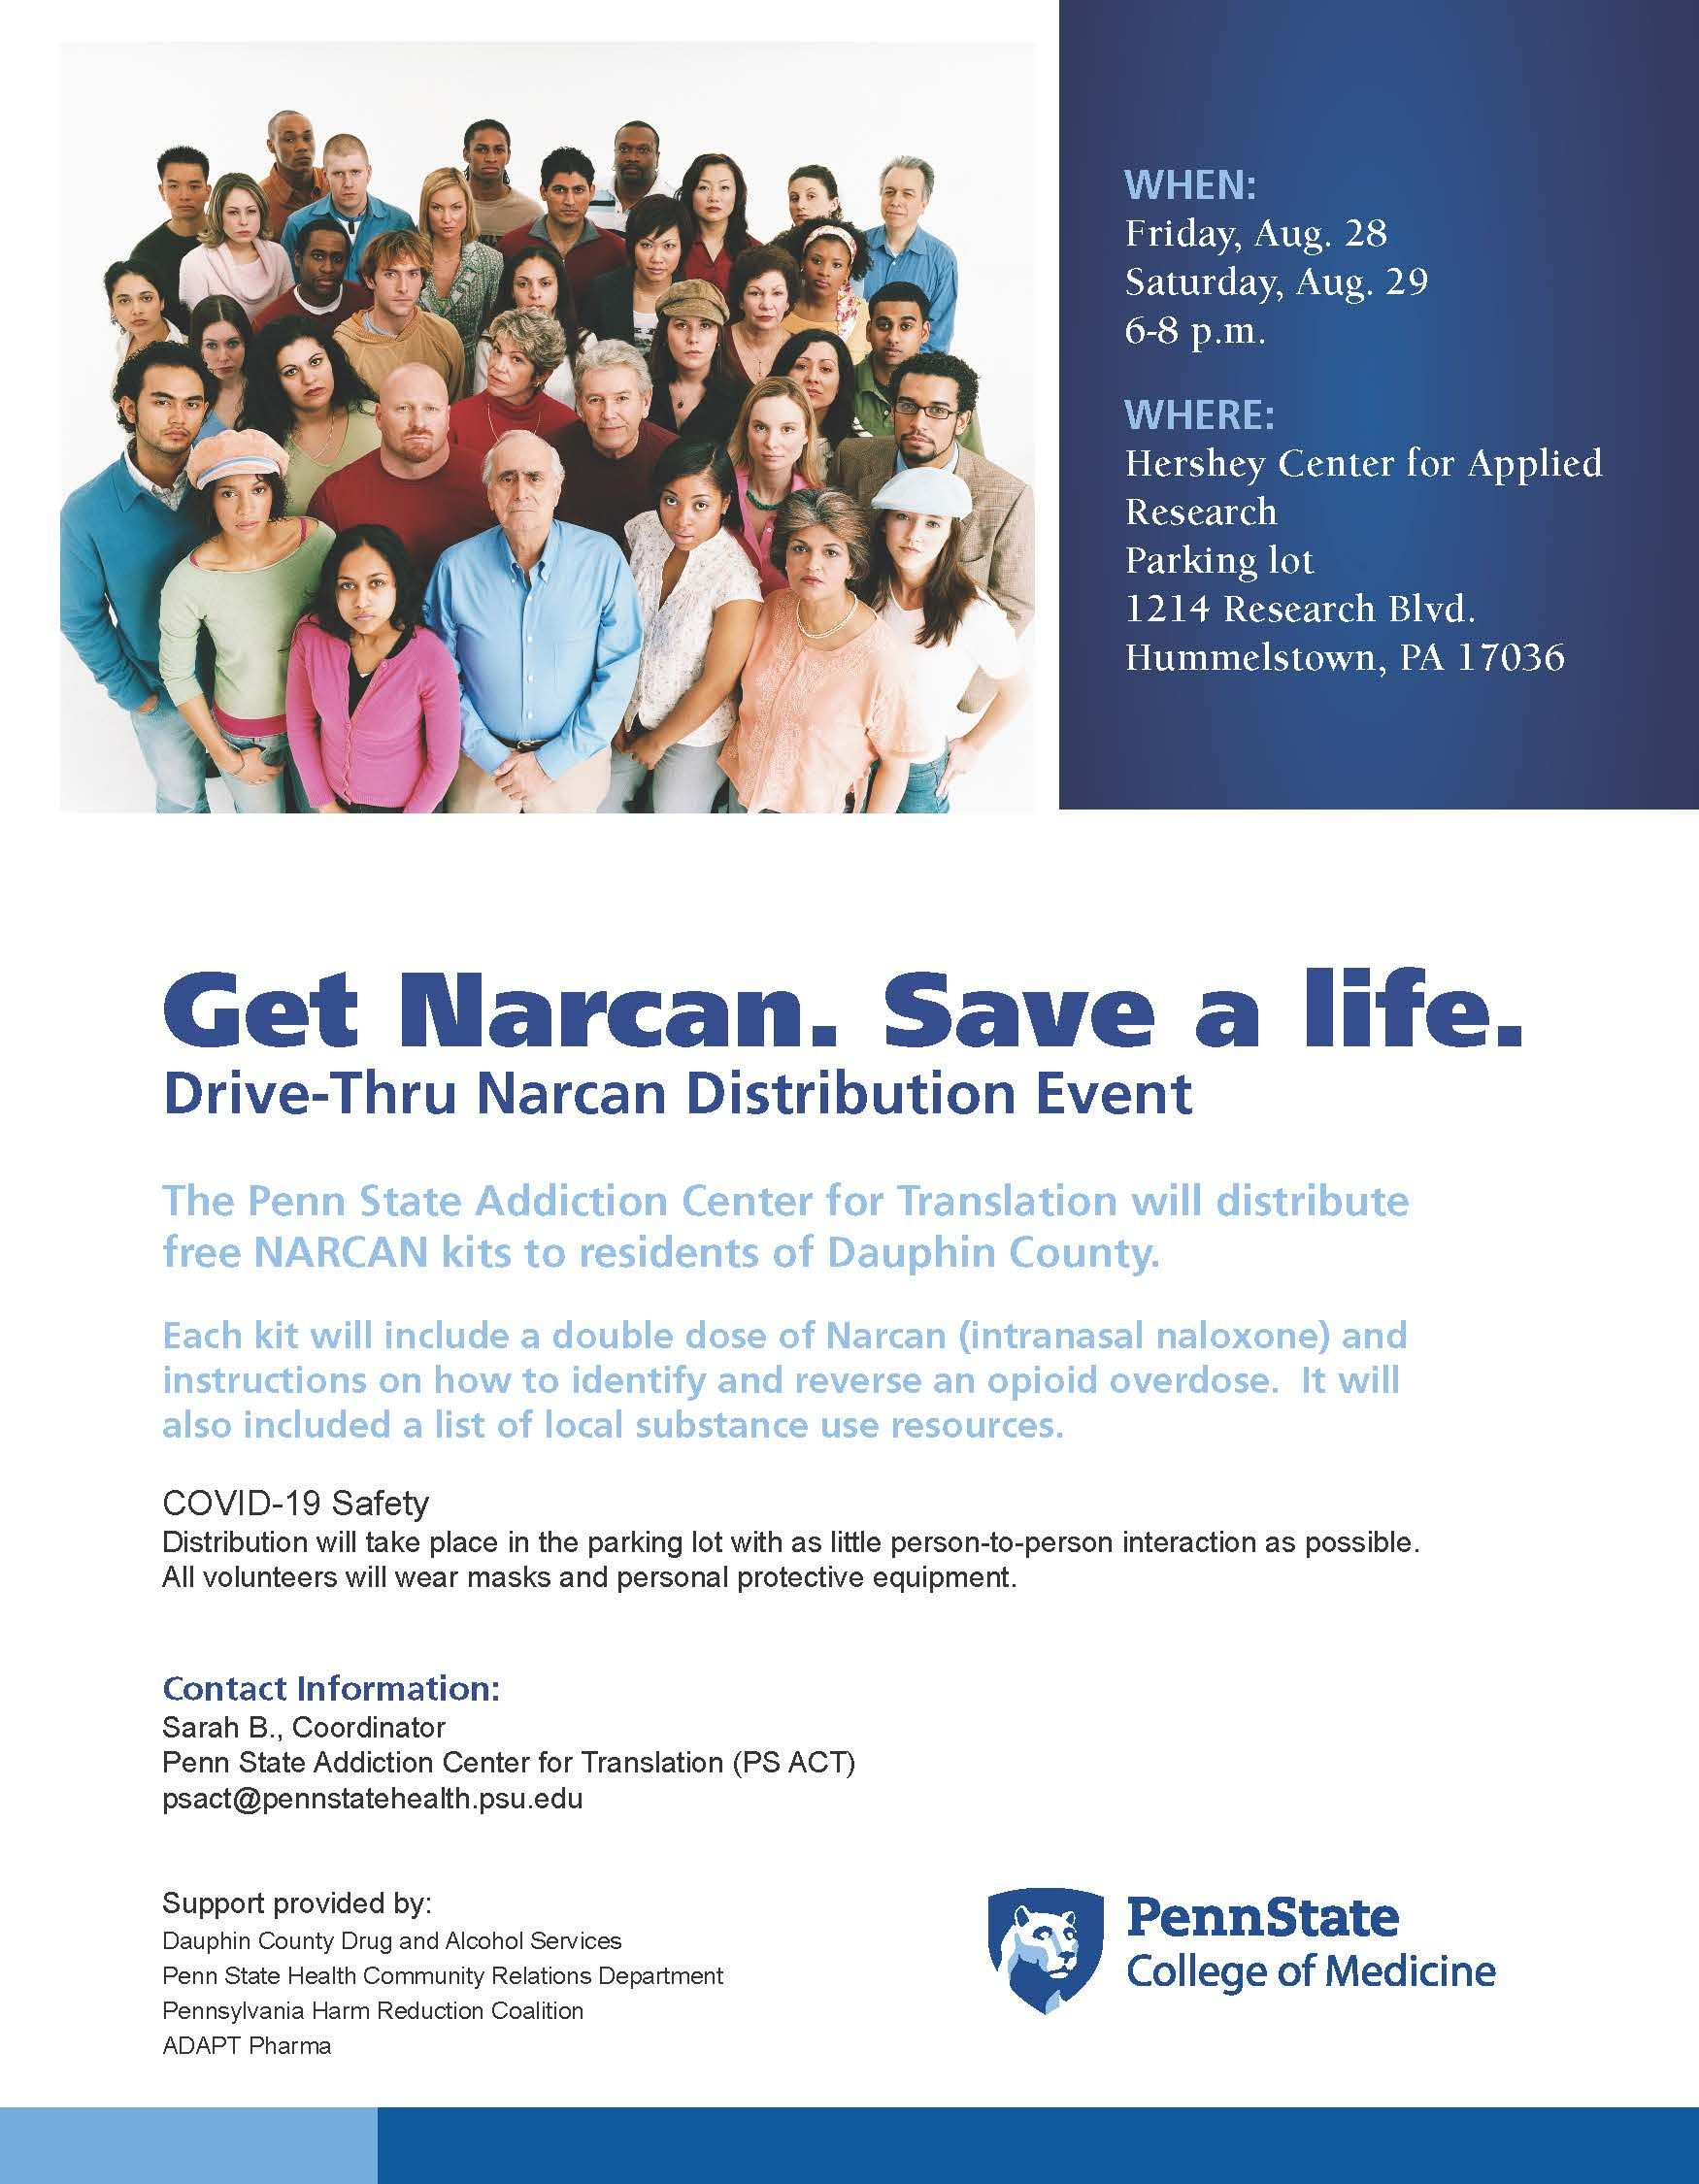 Get Narcan. Save a life.